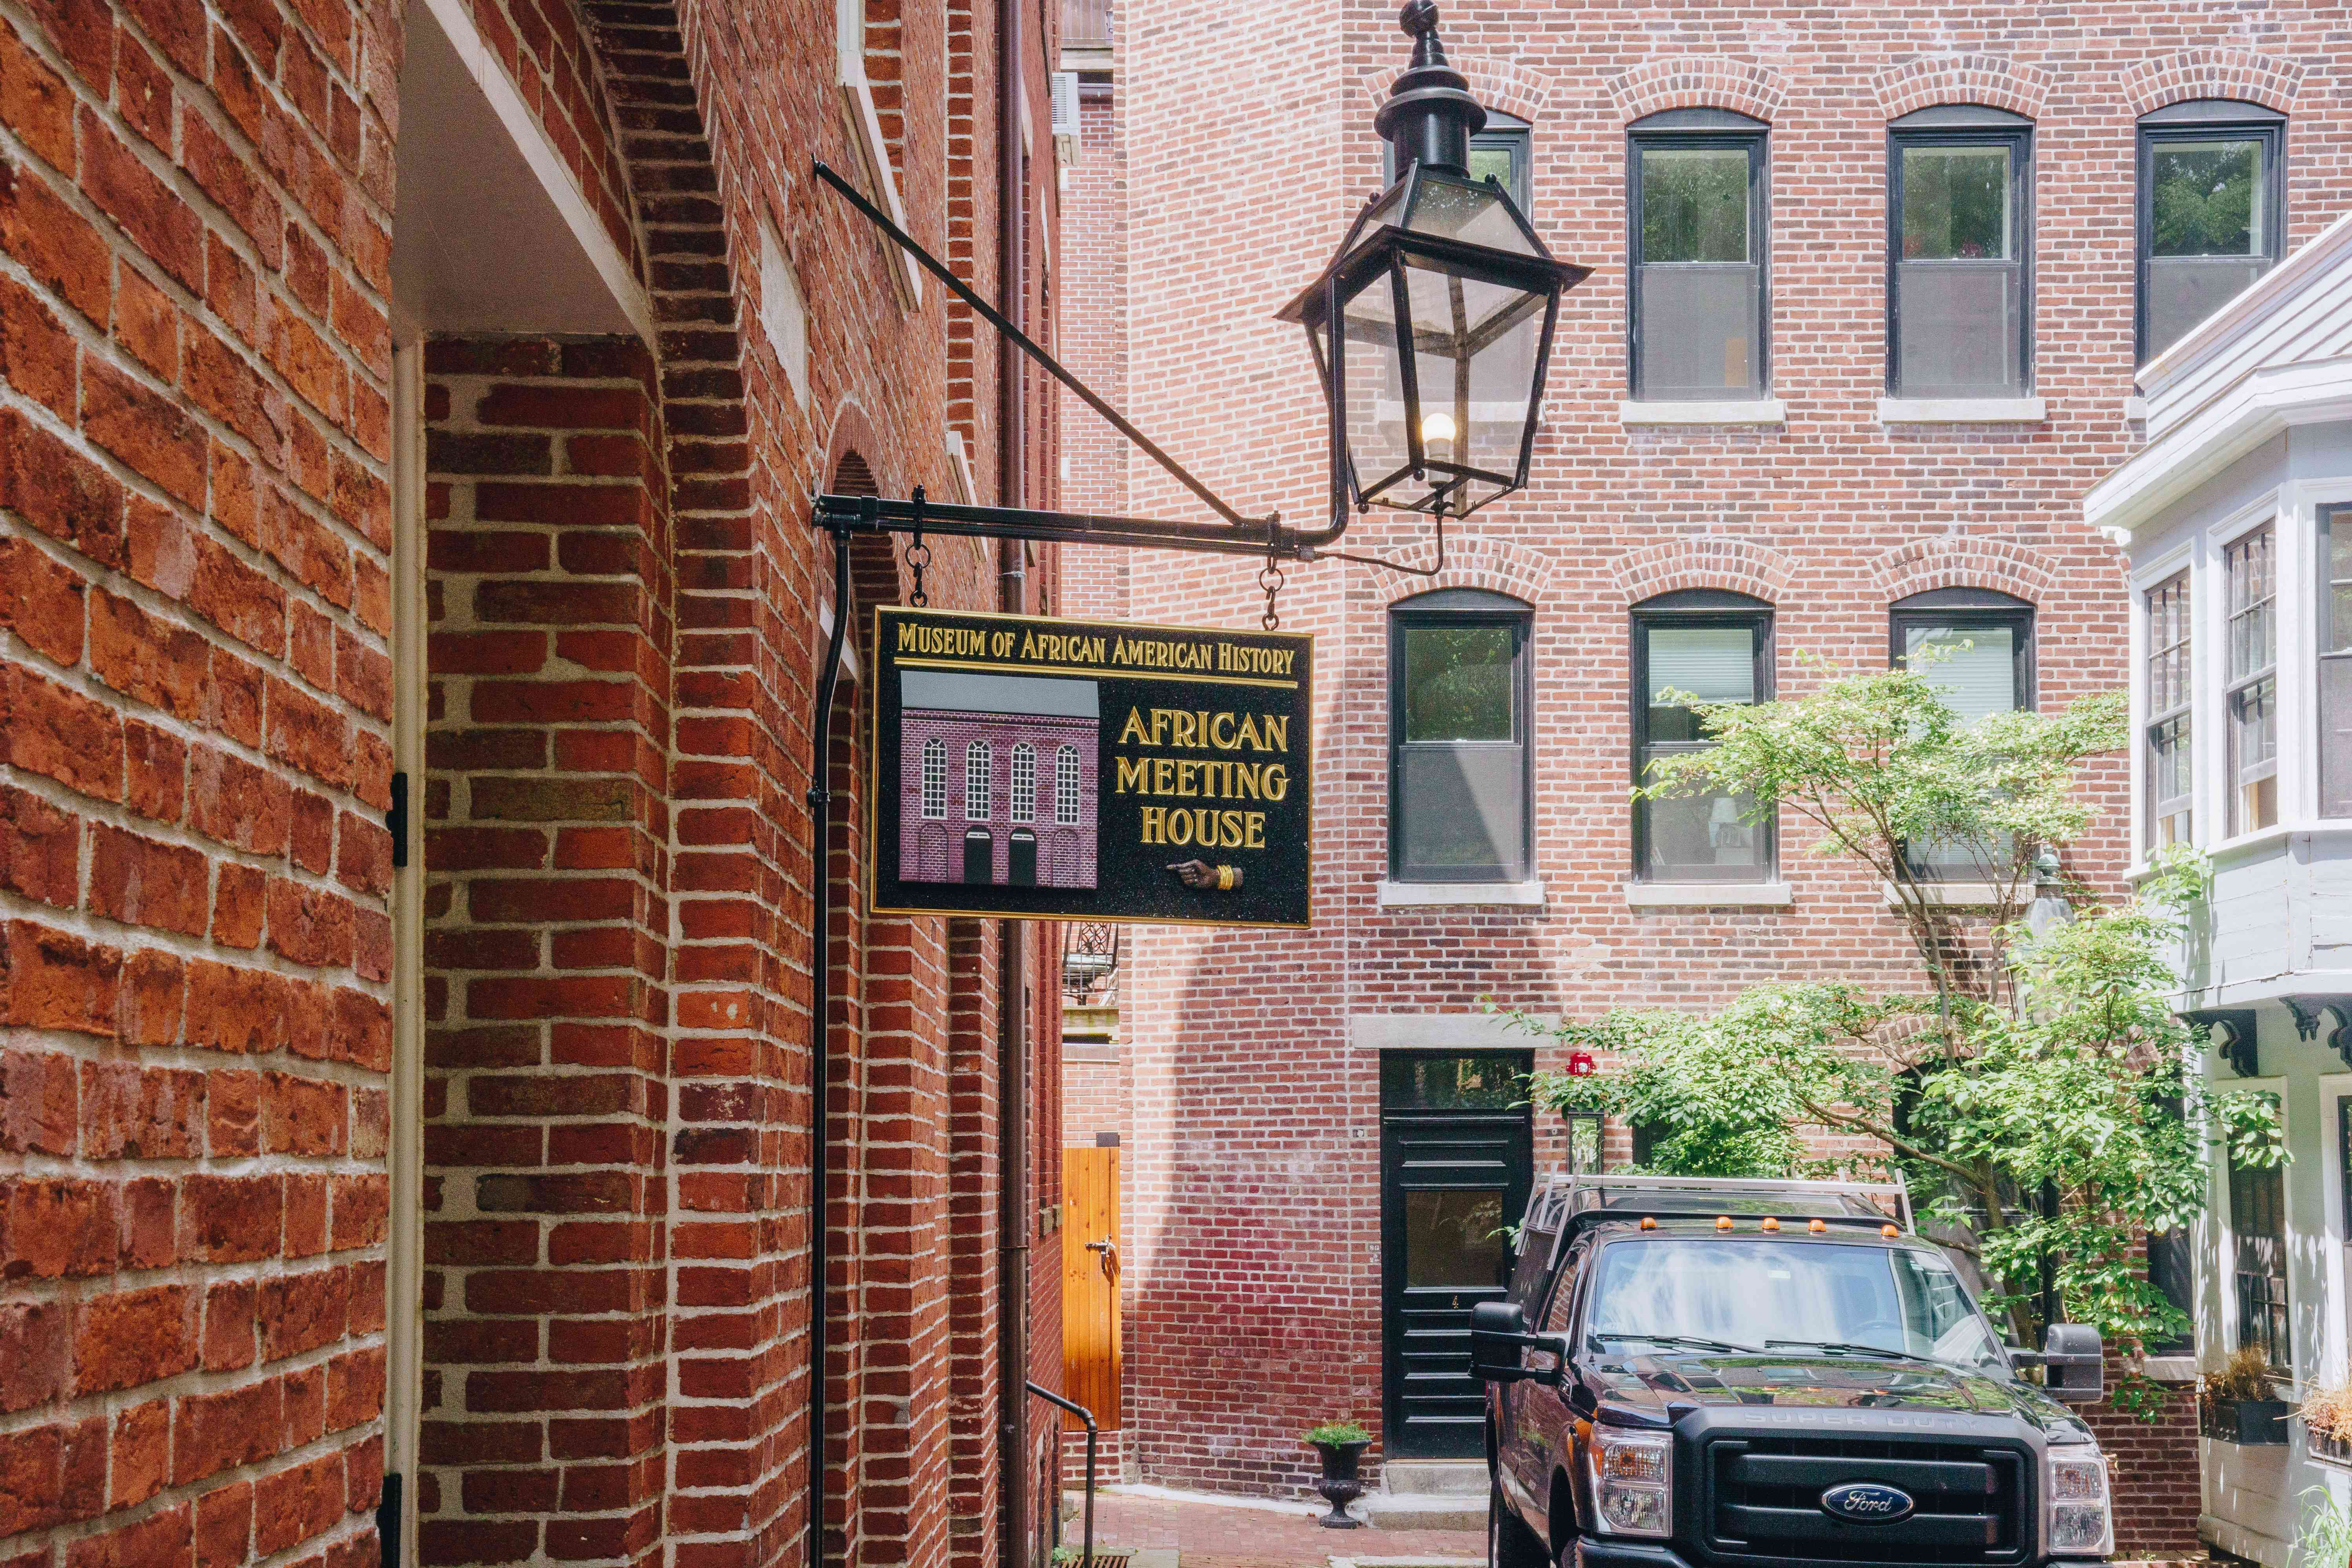 African Meeting House on the Black Heritage Trail in Boston